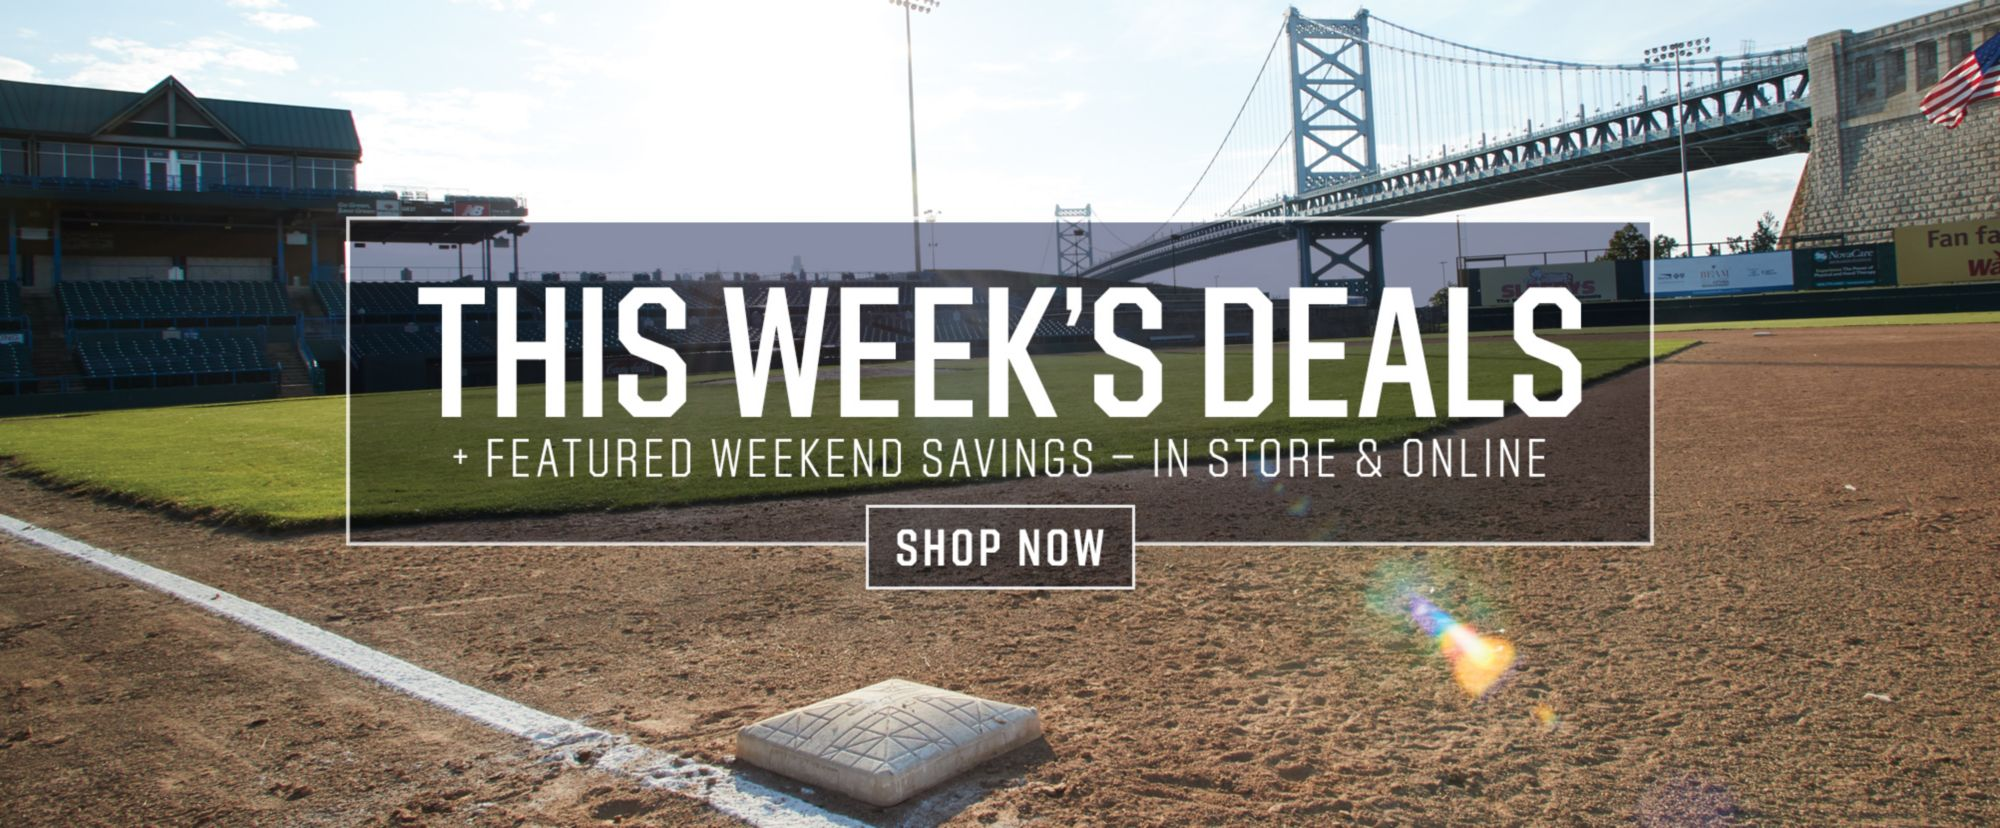 This Week's Deals + Featured Weekend Savings - In Store & Online